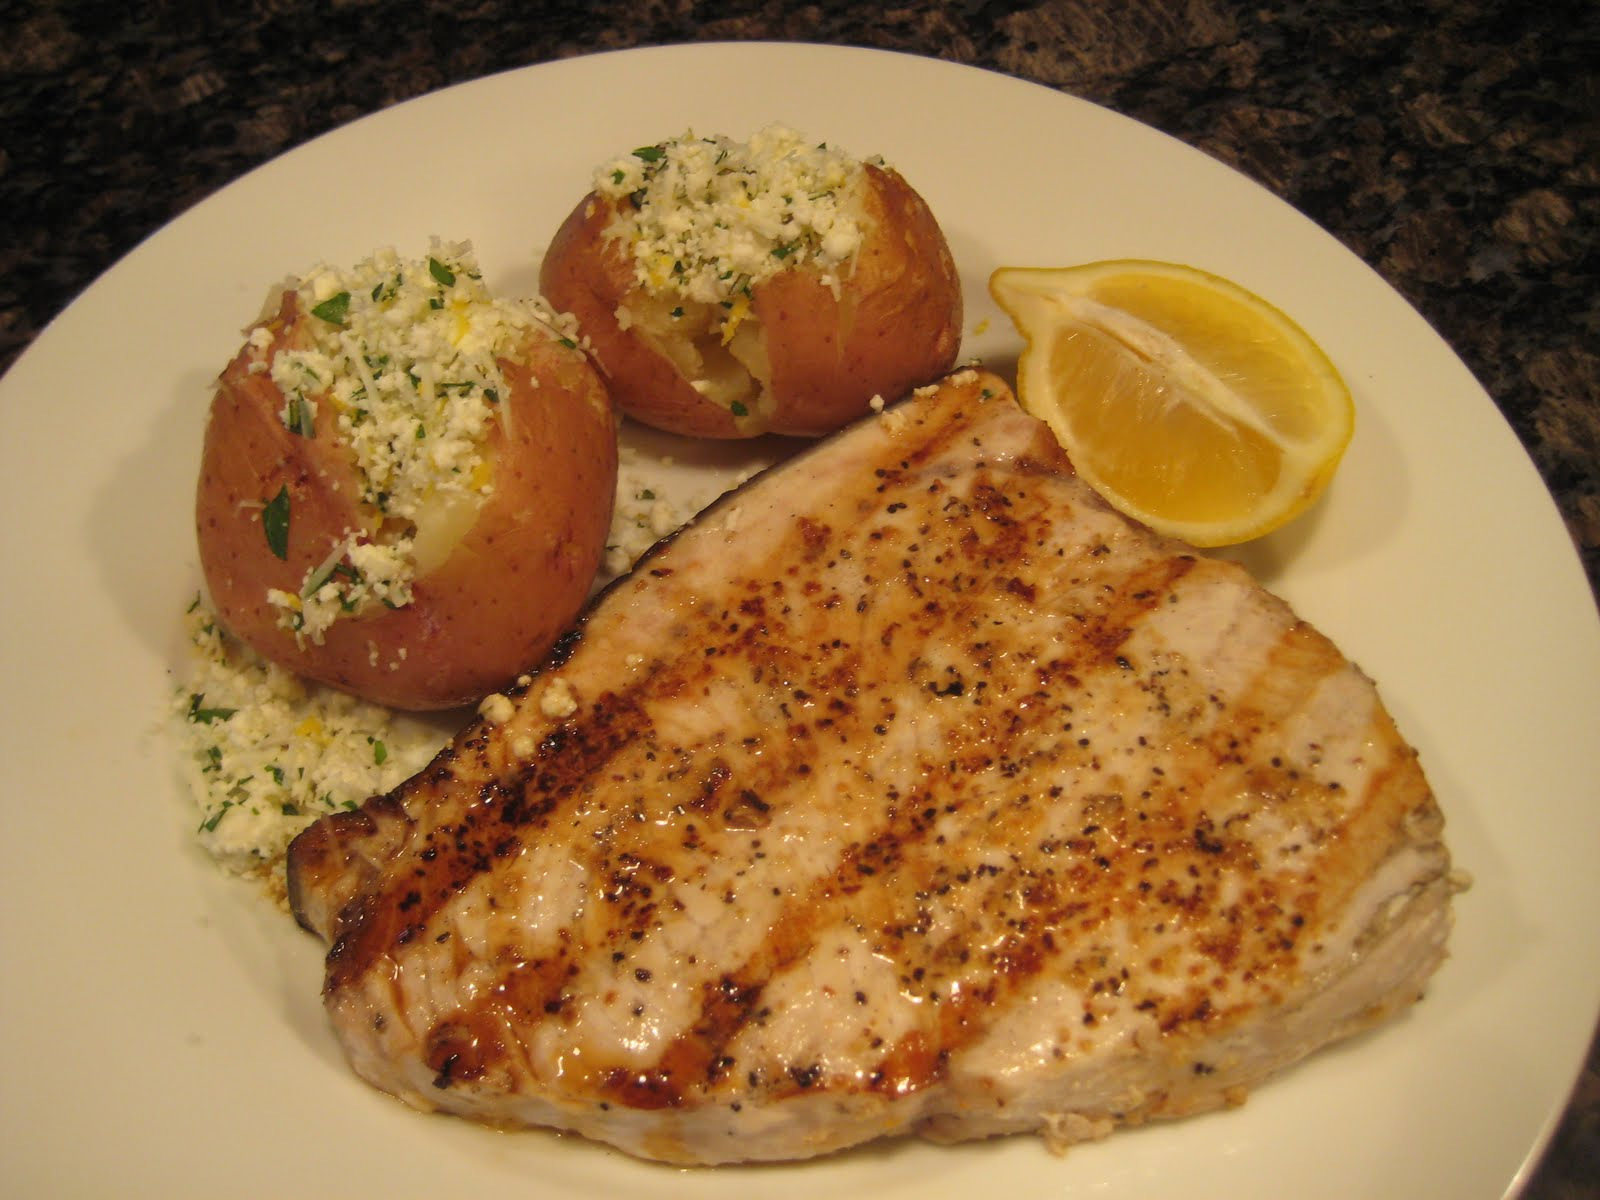 Dinner with the Welches: Ricotta Lemon Potatoes with Grilled Swordfish